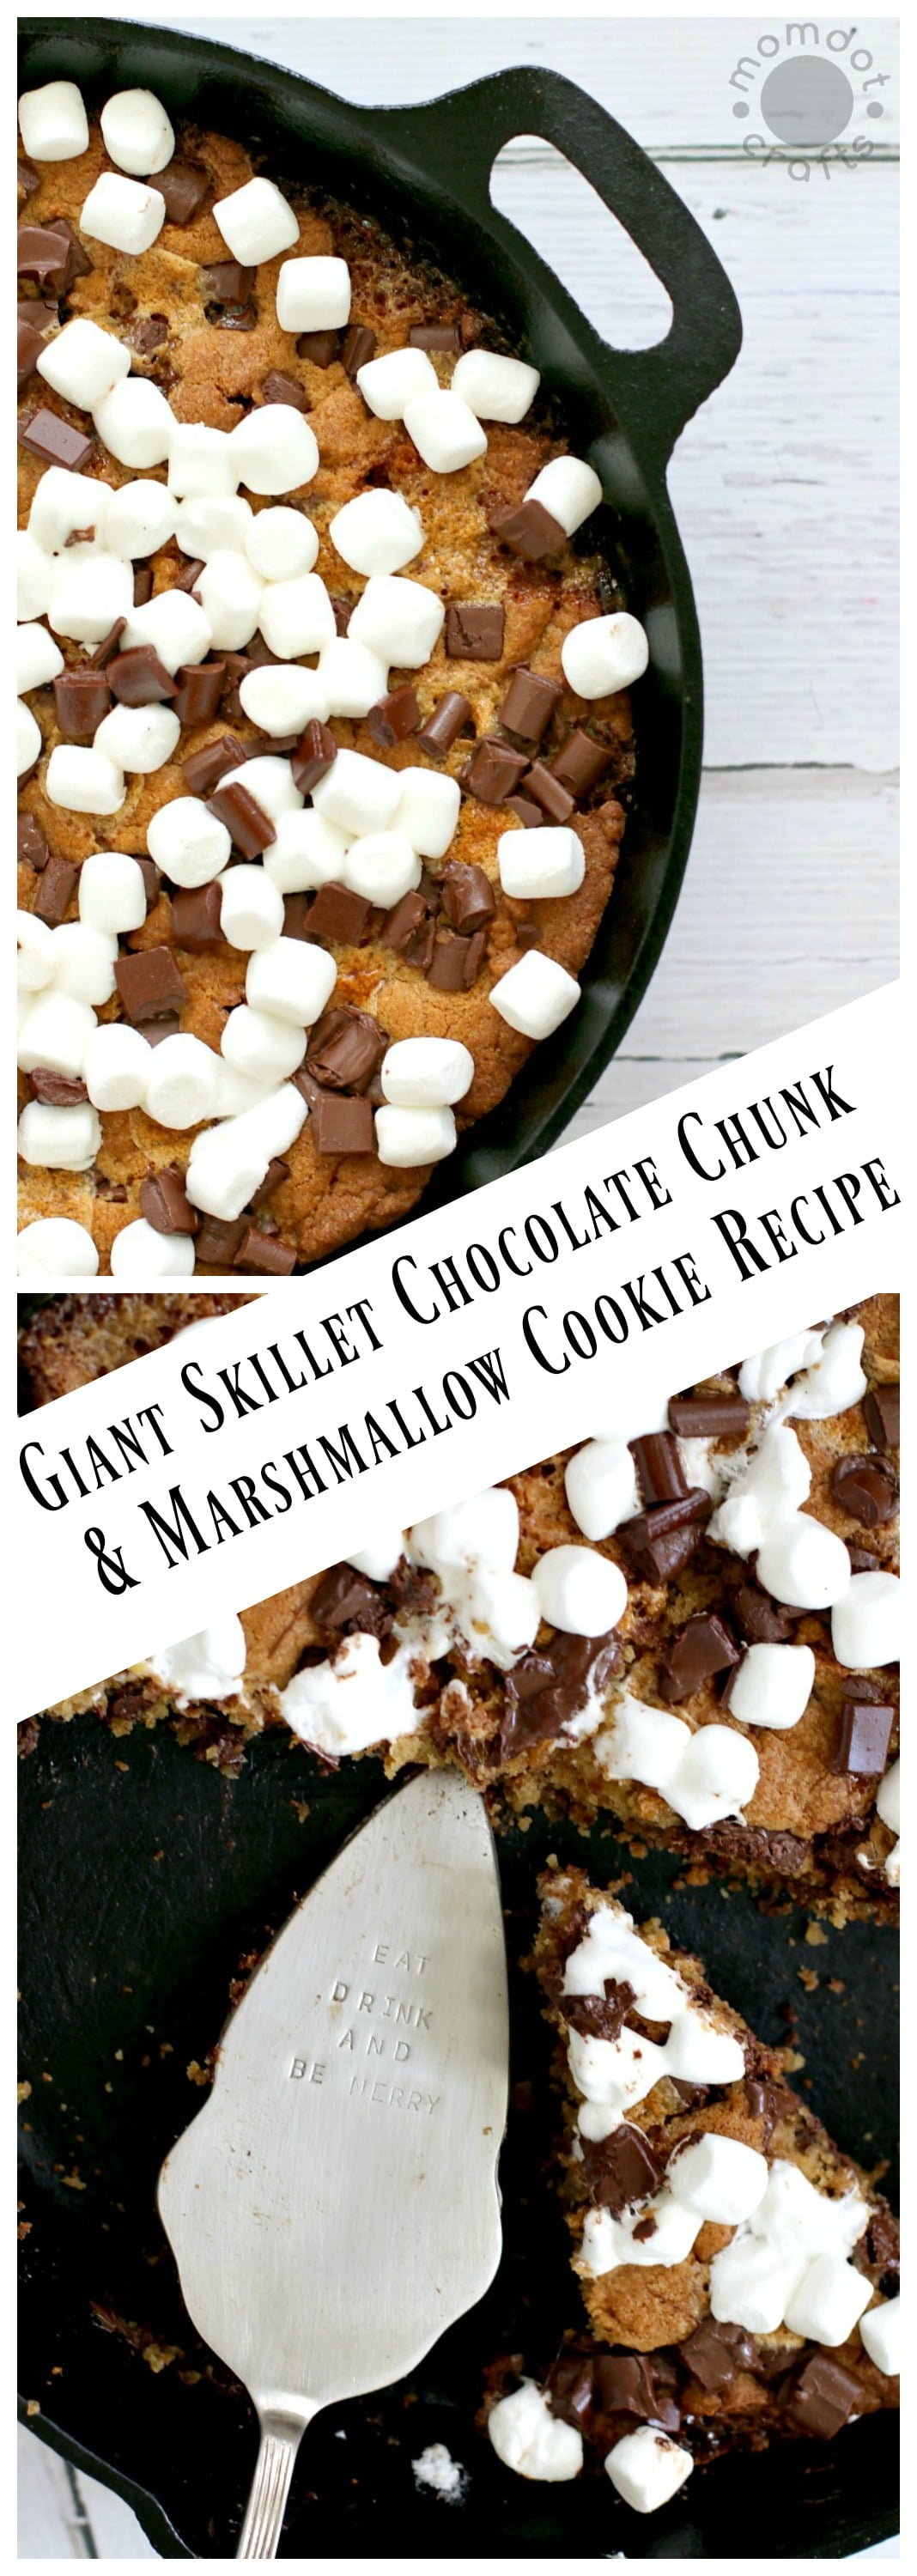 Cast Iron Skillet Cookie Recipe - Giant Skillet Chocolate Chunk and Marshmallow Cookie Recipe,